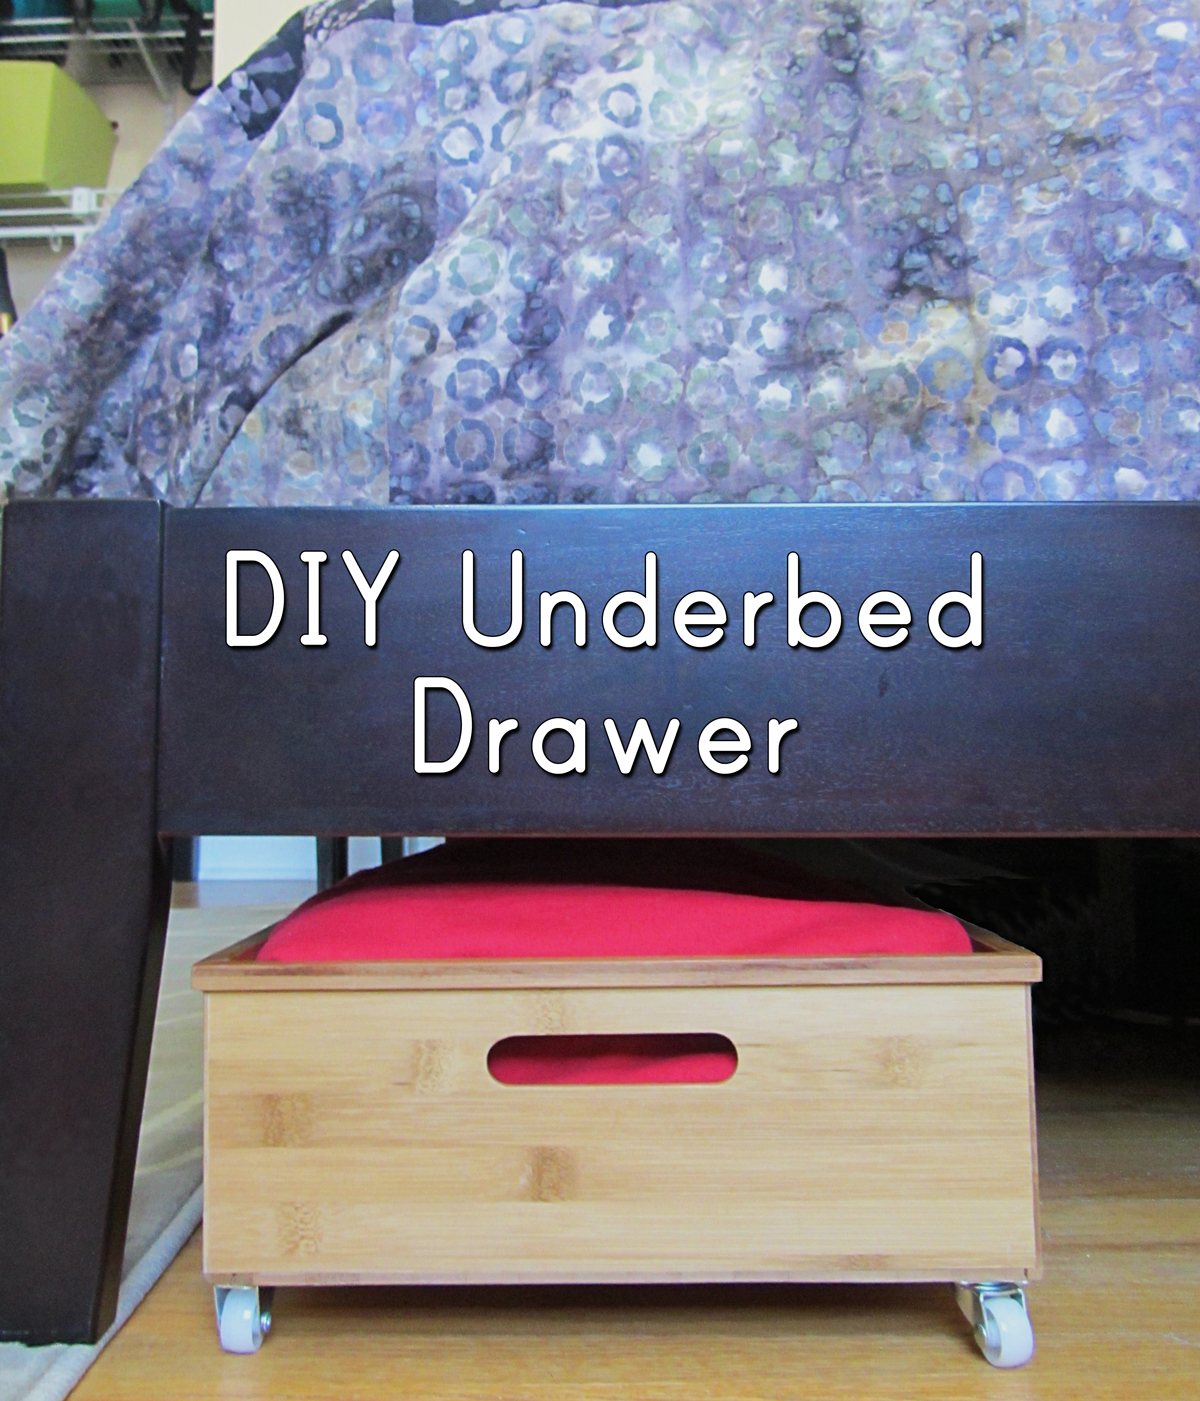 This Is Such A Great Bedroom Storage Idea Diy Under Bed Drawer Lets You